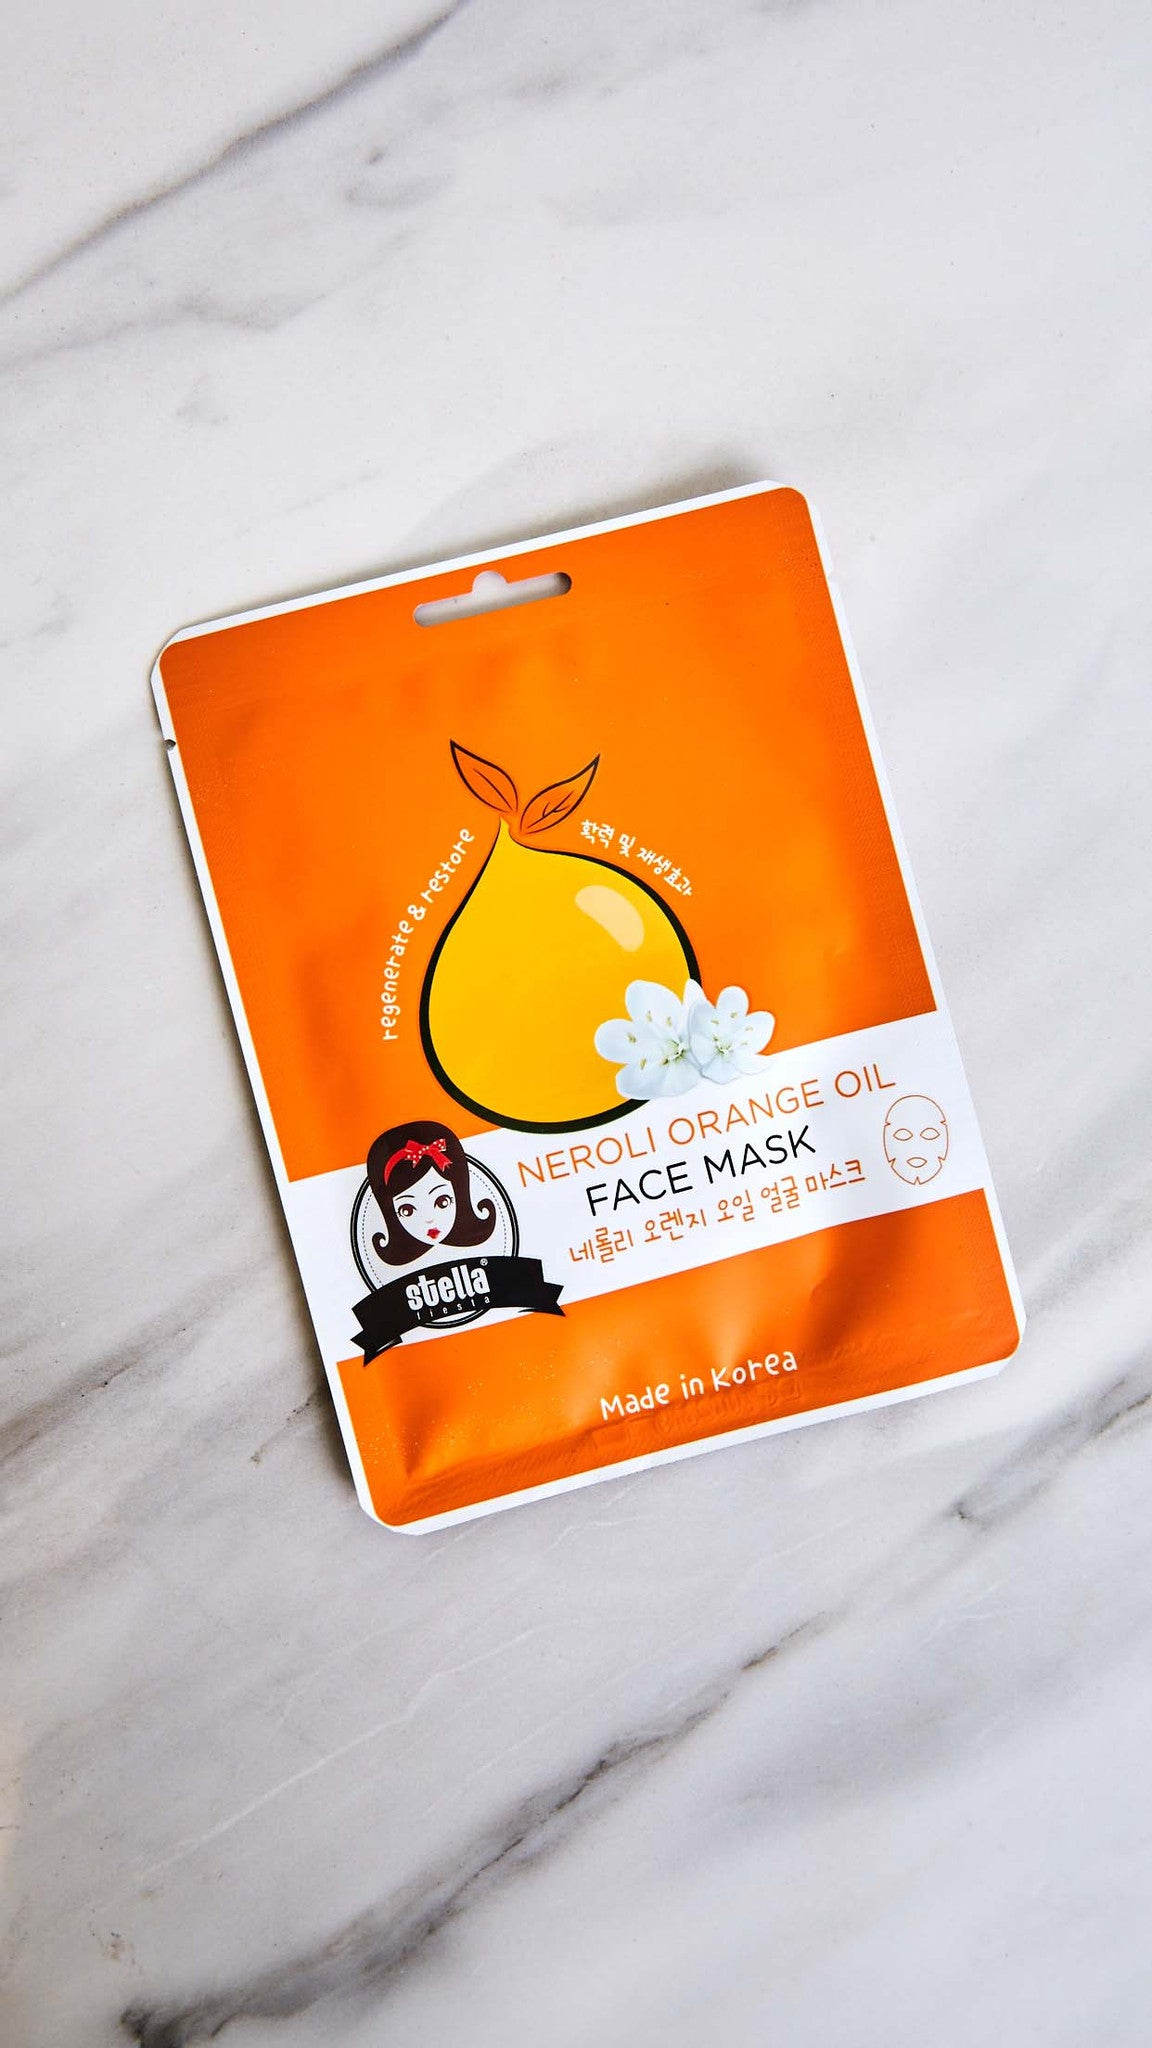 Neroli Orange Oil Regenerating Face Mask